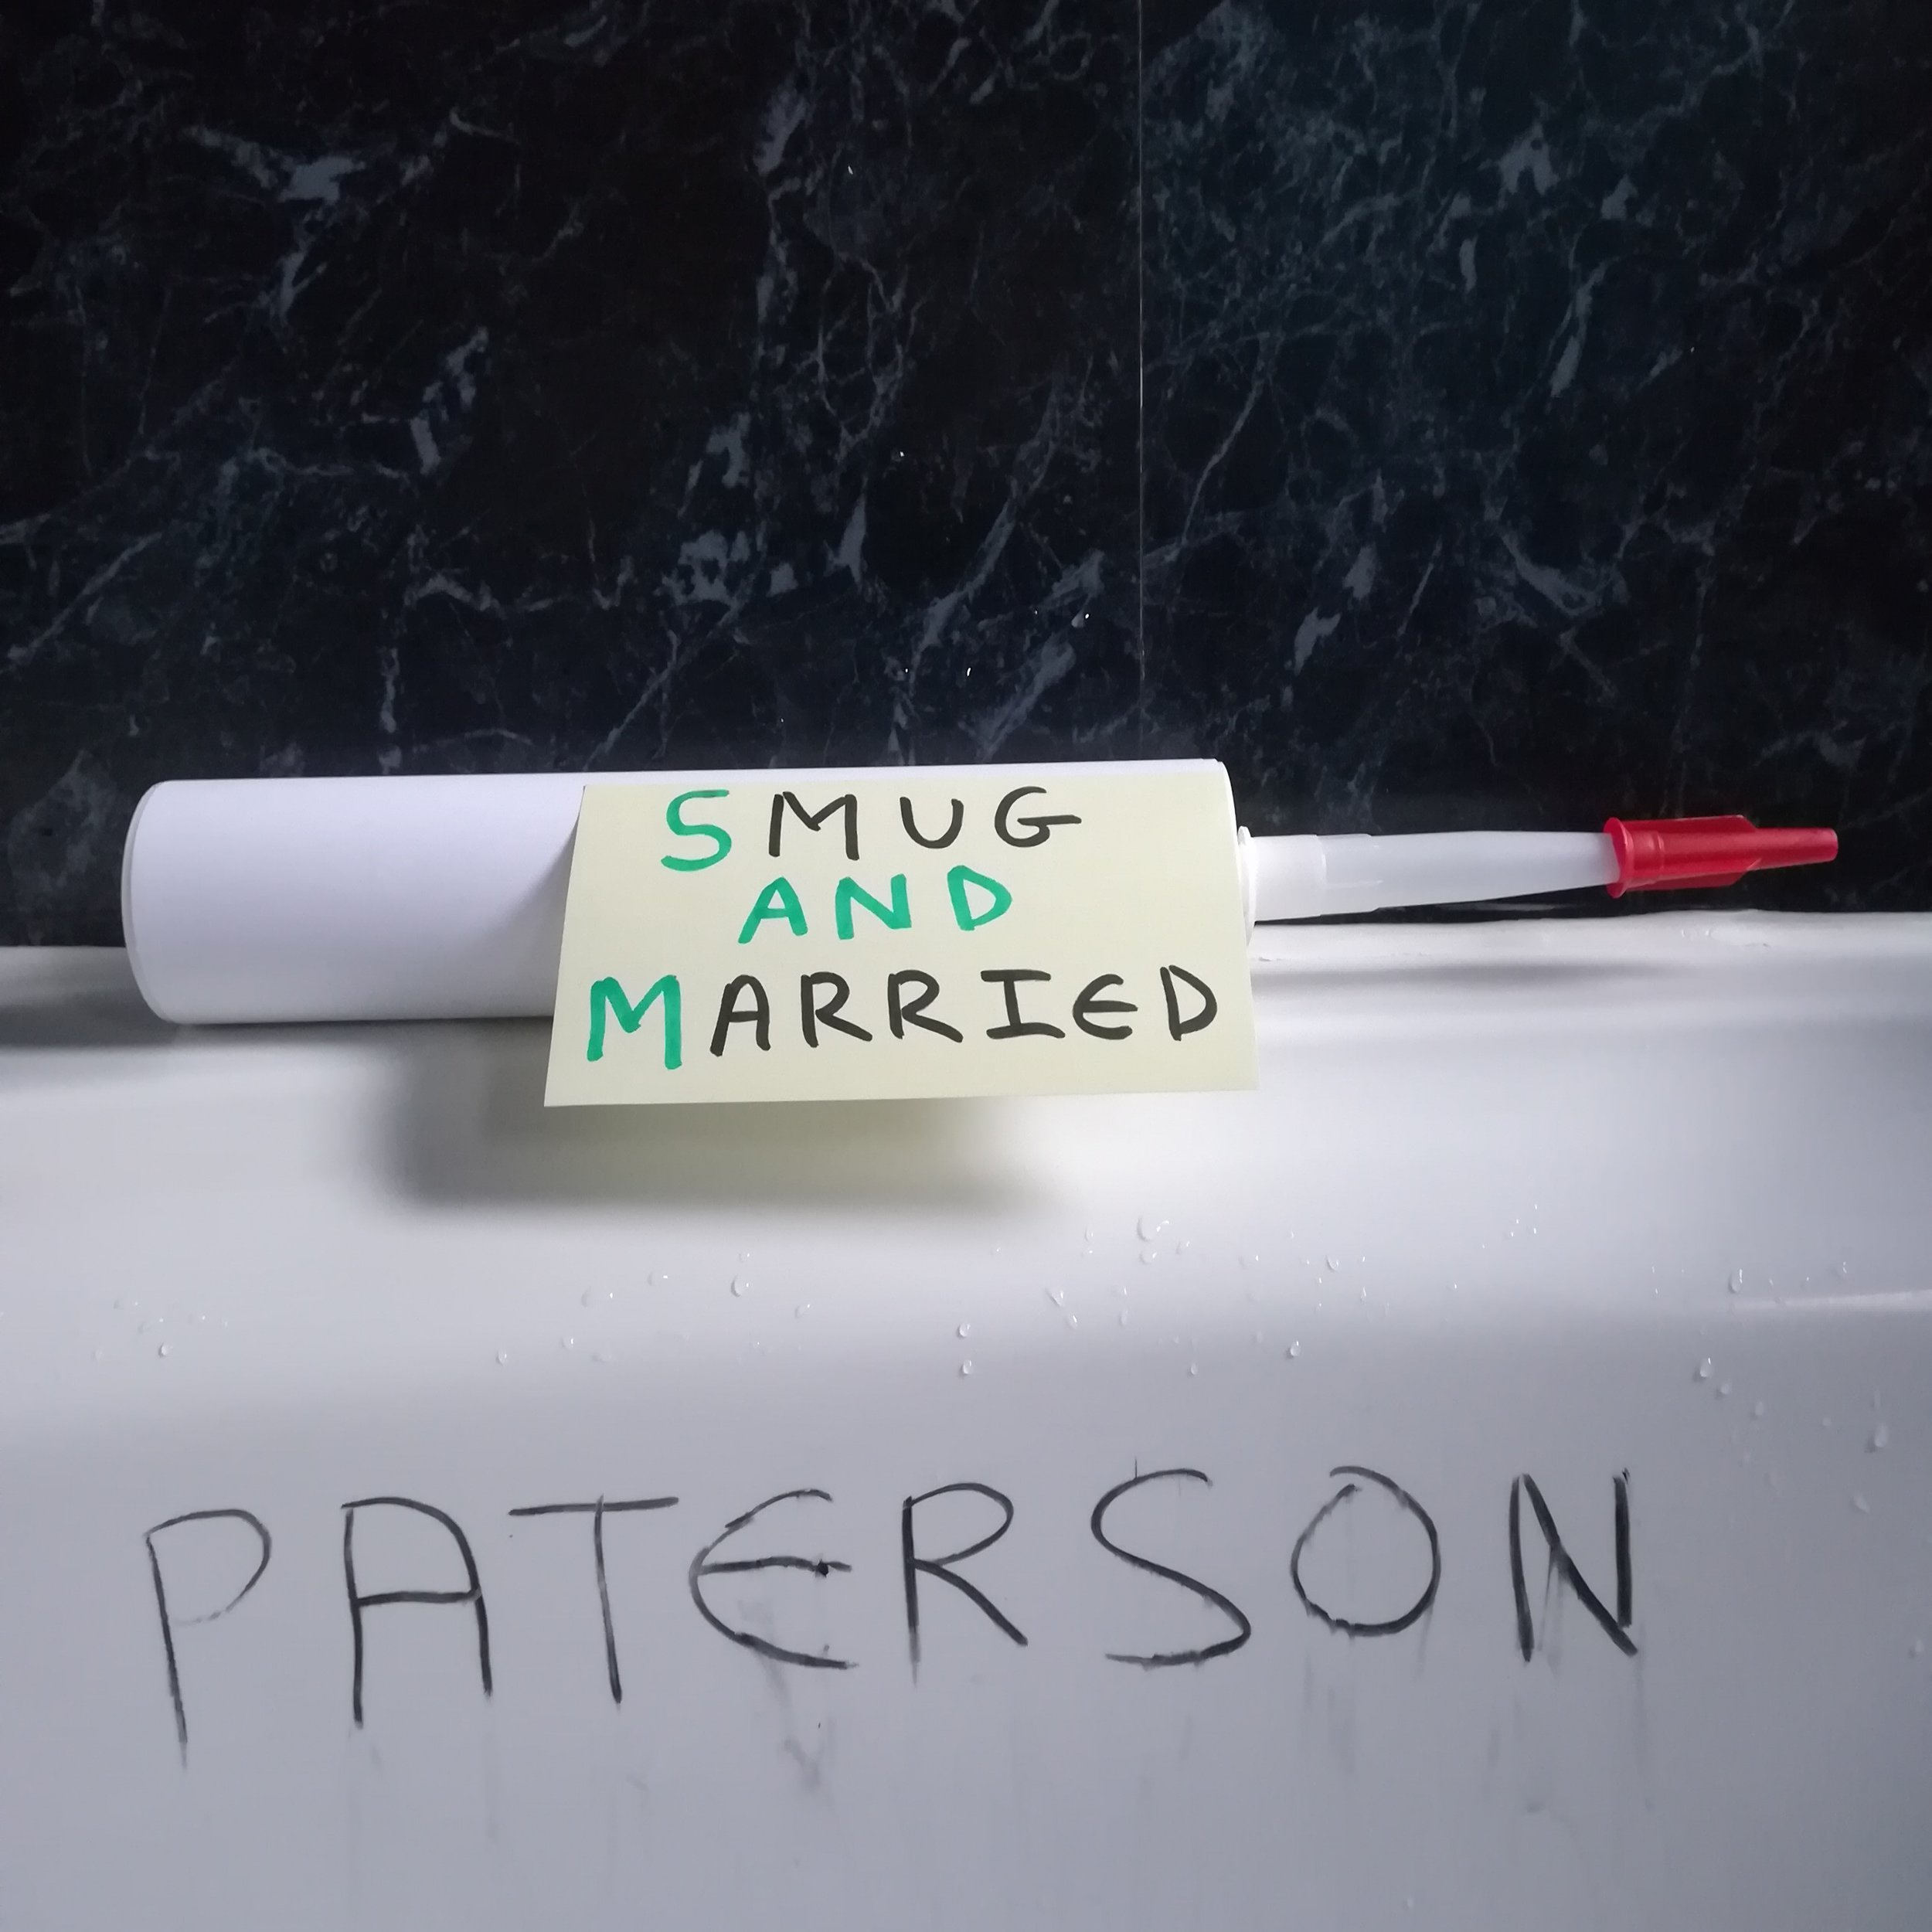 Paterson's latest release, Smug and Married will be available from February 14.